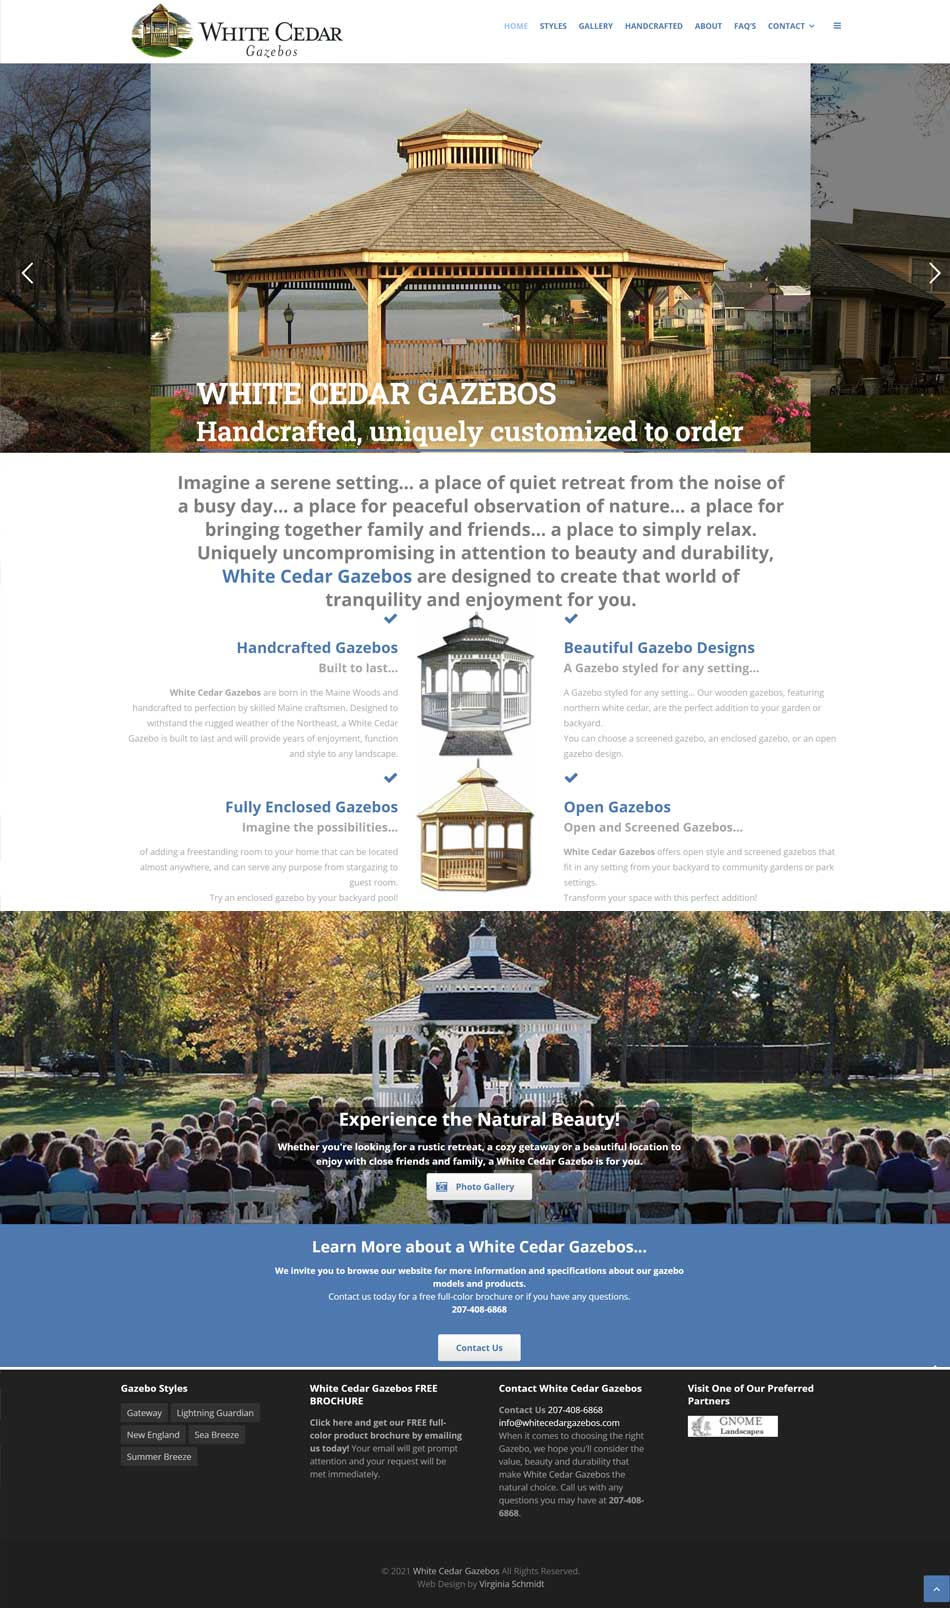 White Cedar Gazebos website screenshot